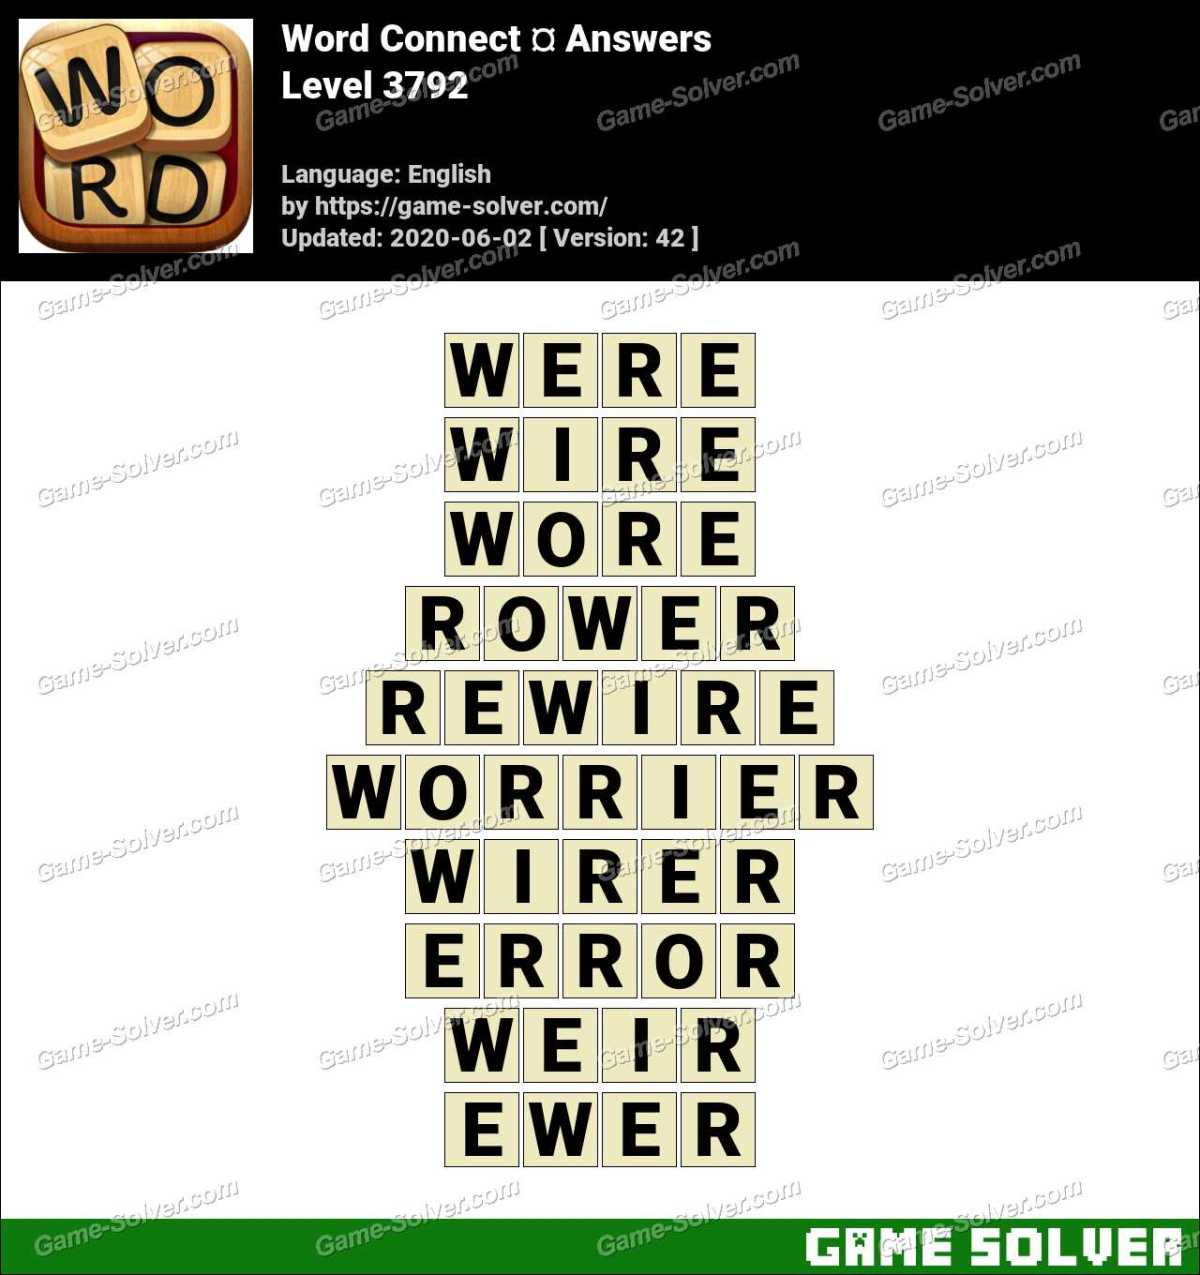 Word Connect Level 3792 Answers